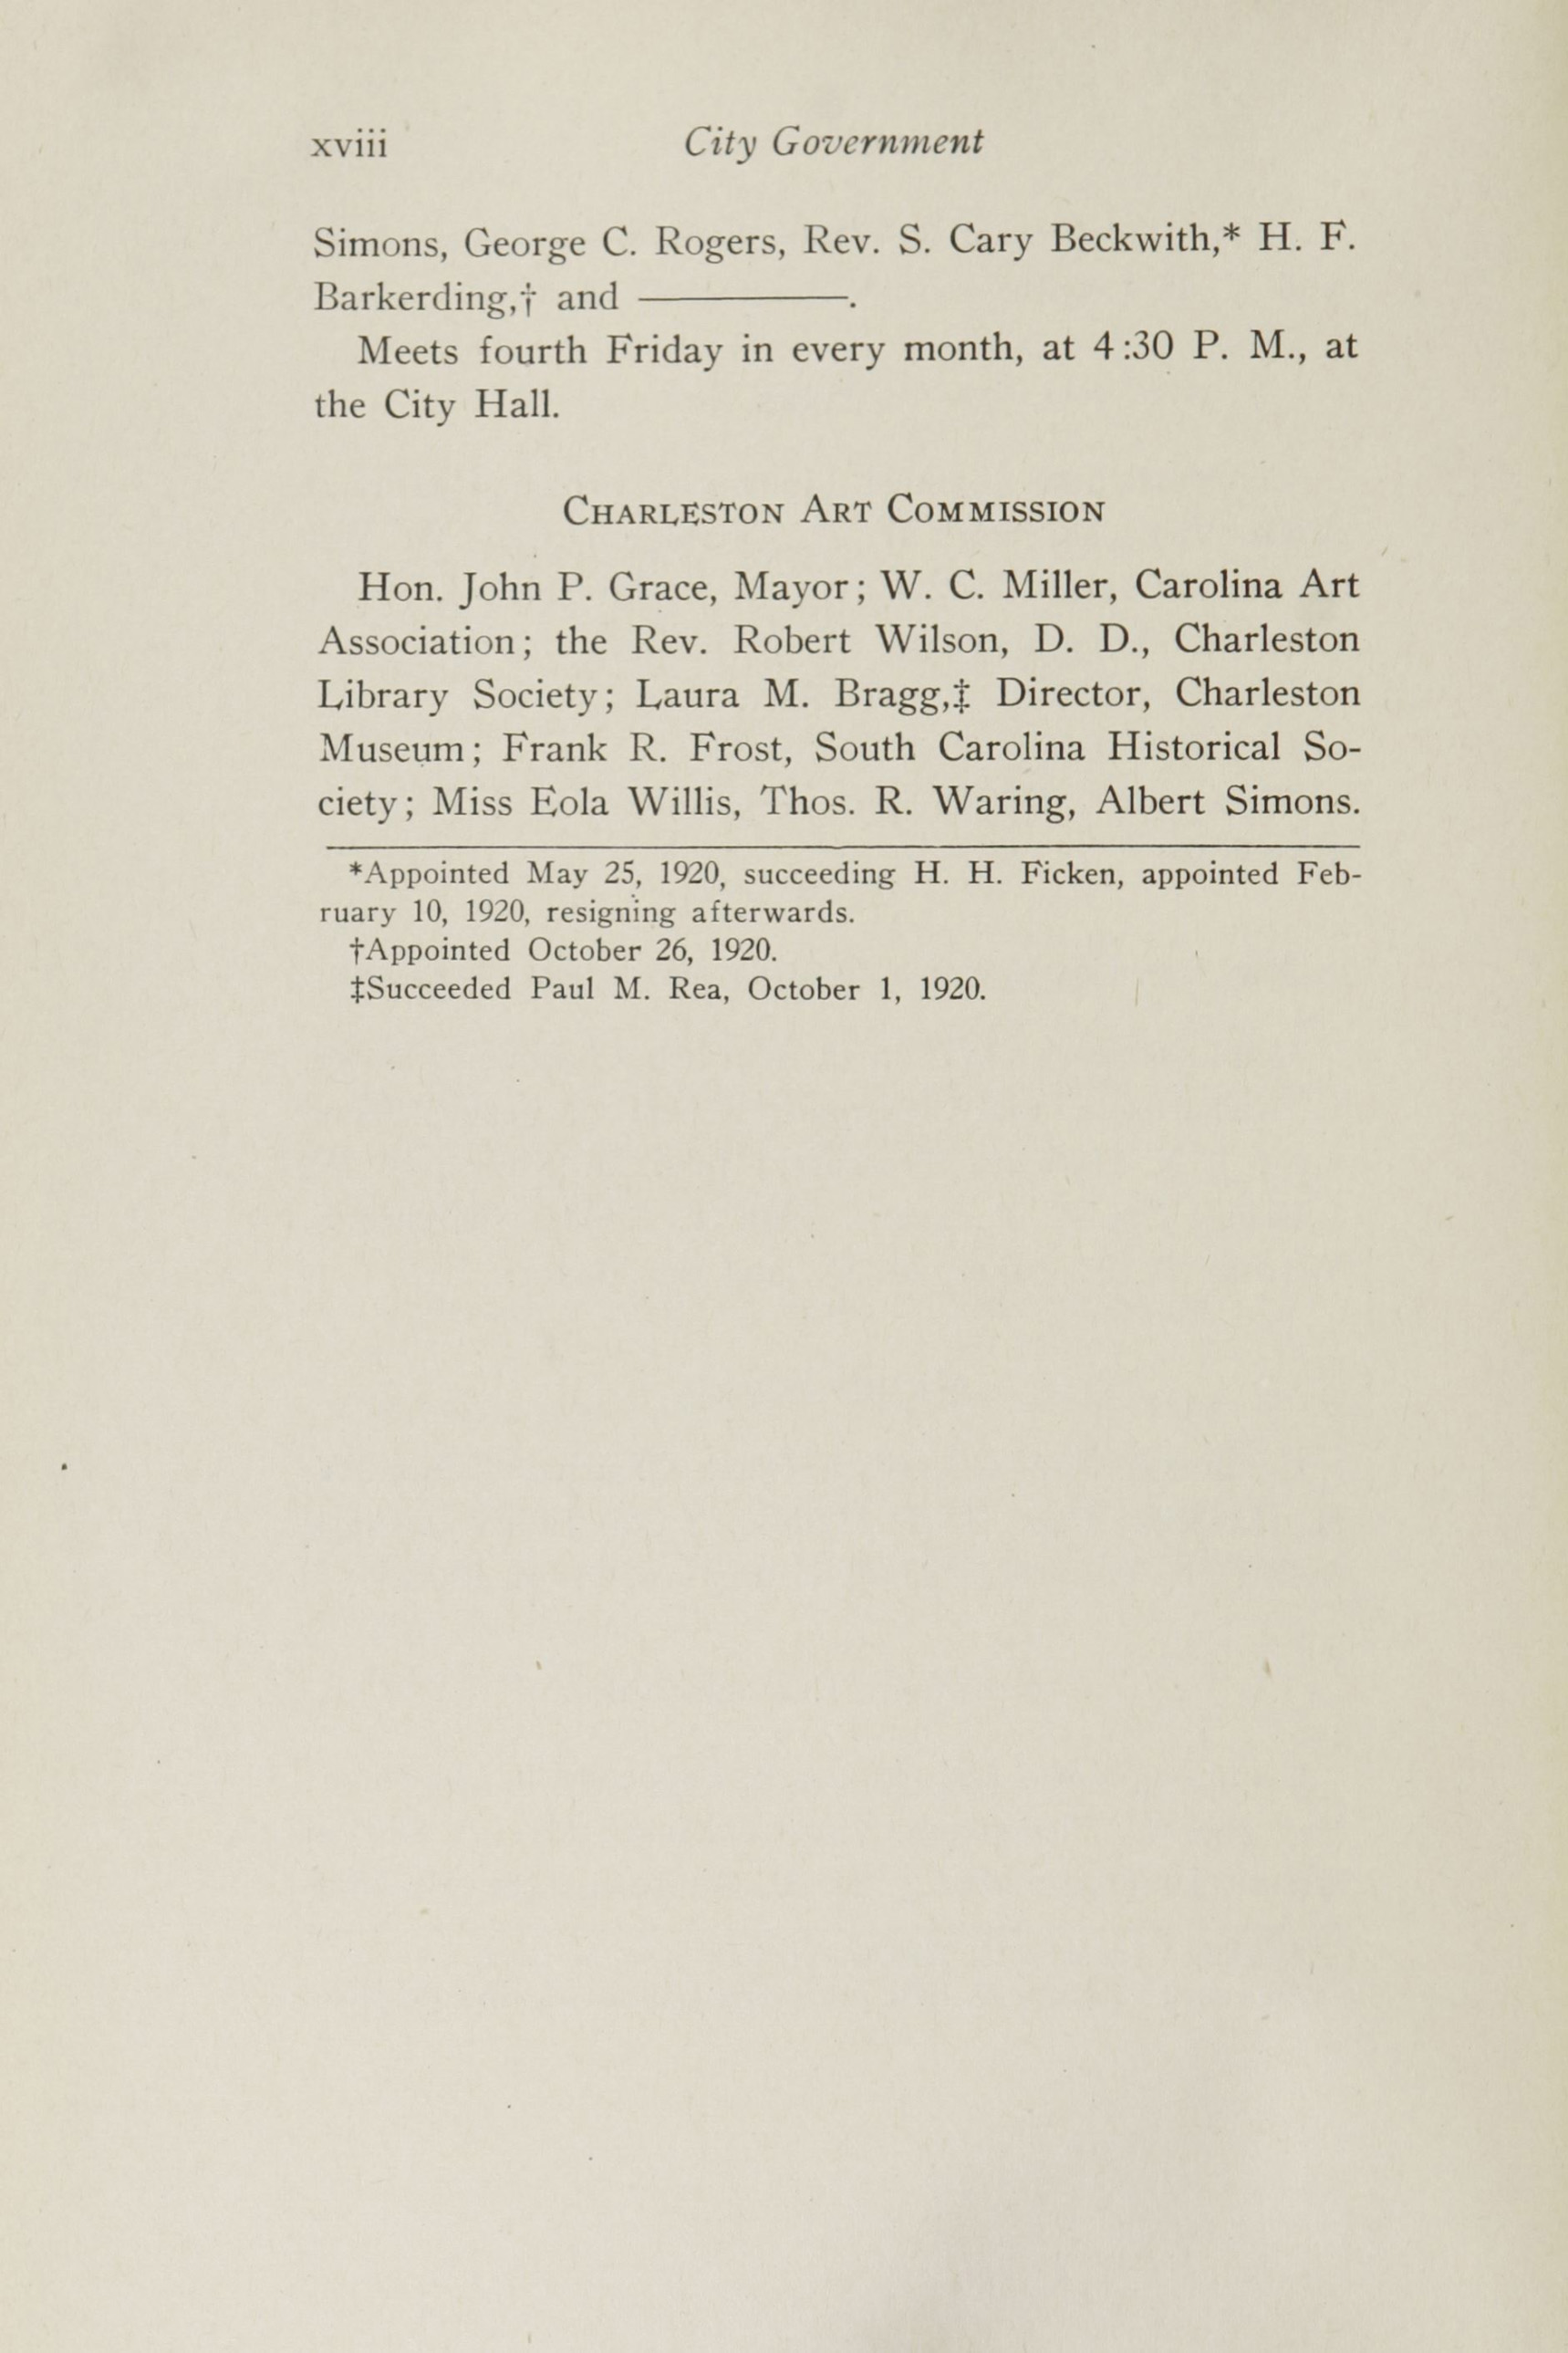 Charleston Yearbook, 1920, page viii